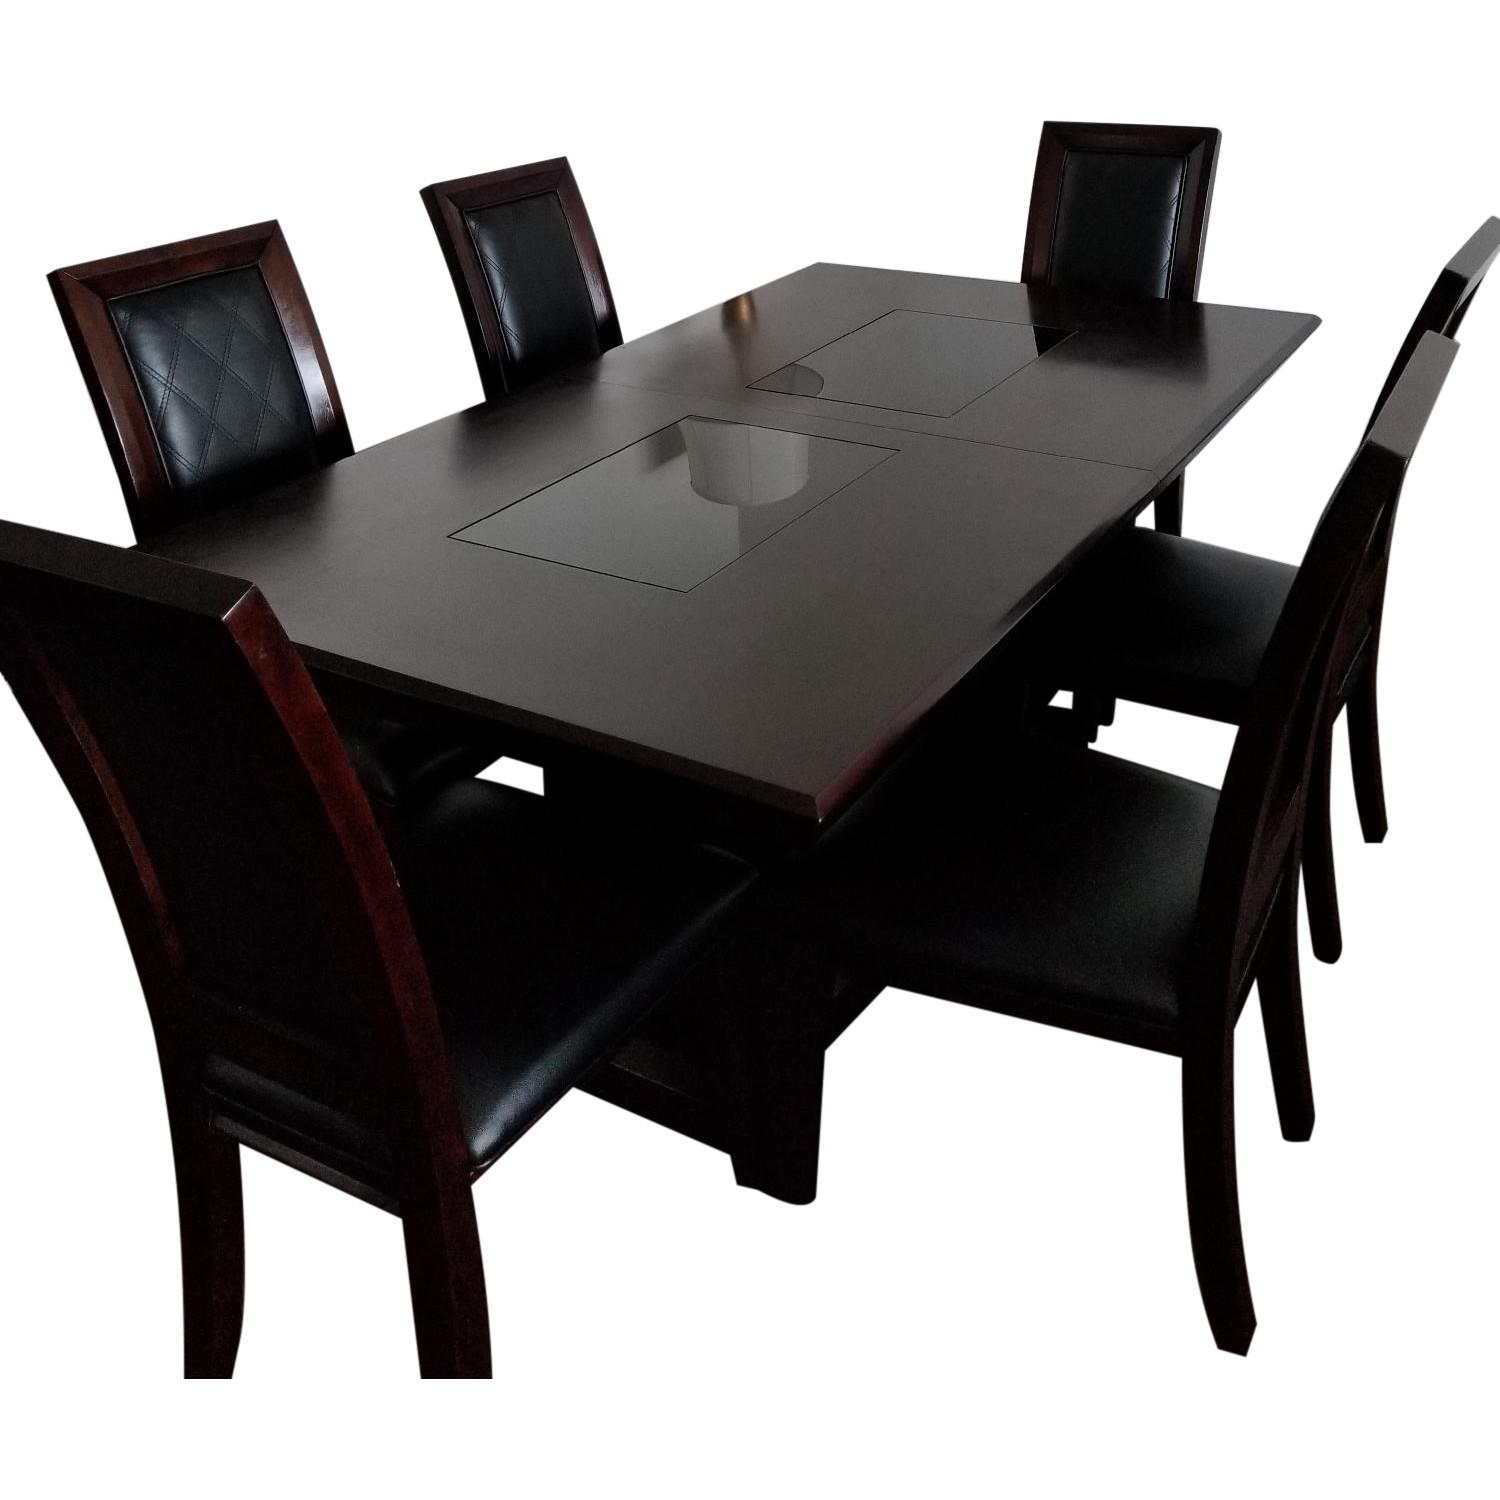 Raymour & Flanigan 7 Piece Cherry Dining Set